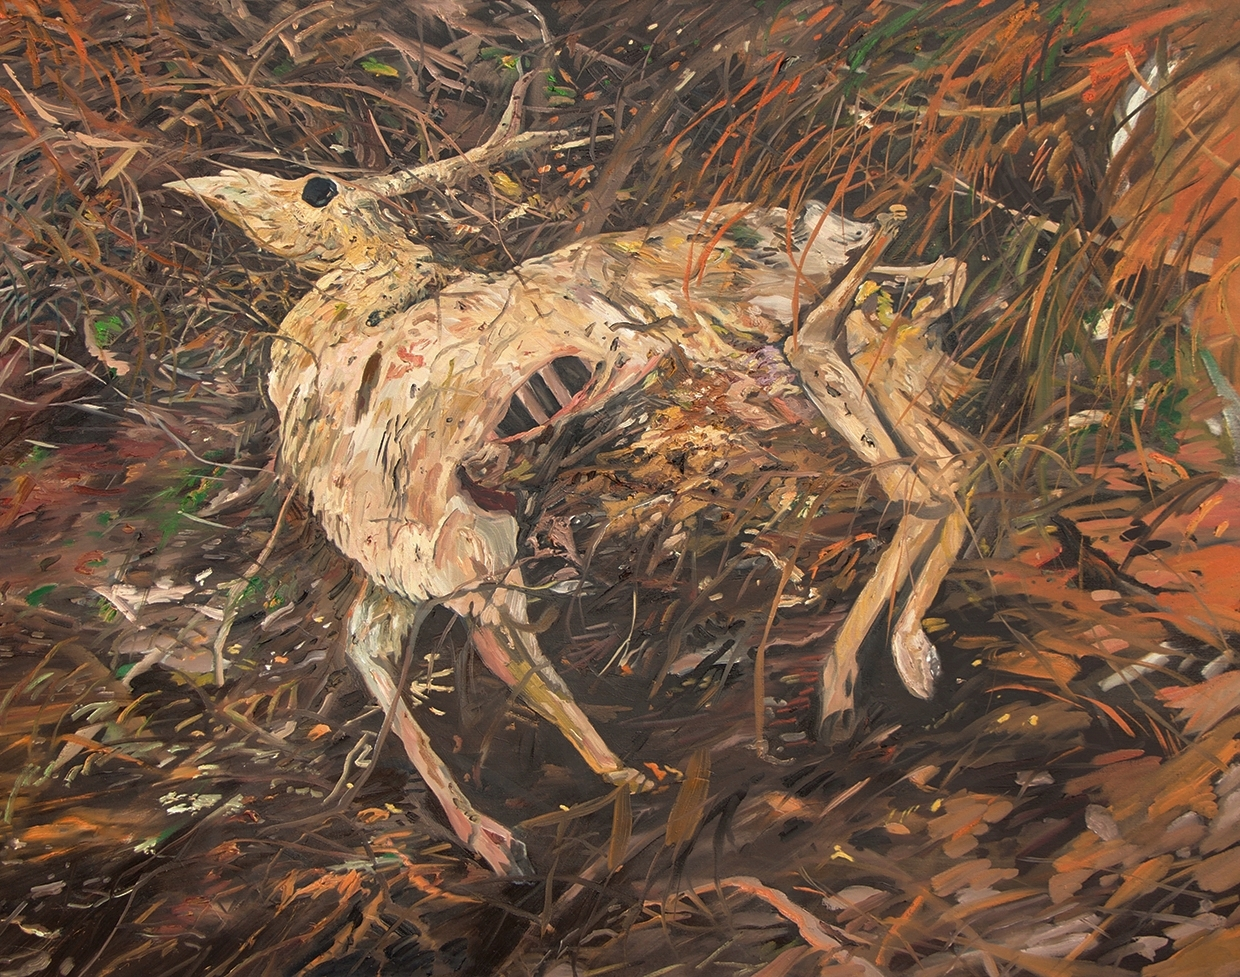 """Dead Deer"" Oil on canvas, 48"" x 60"""